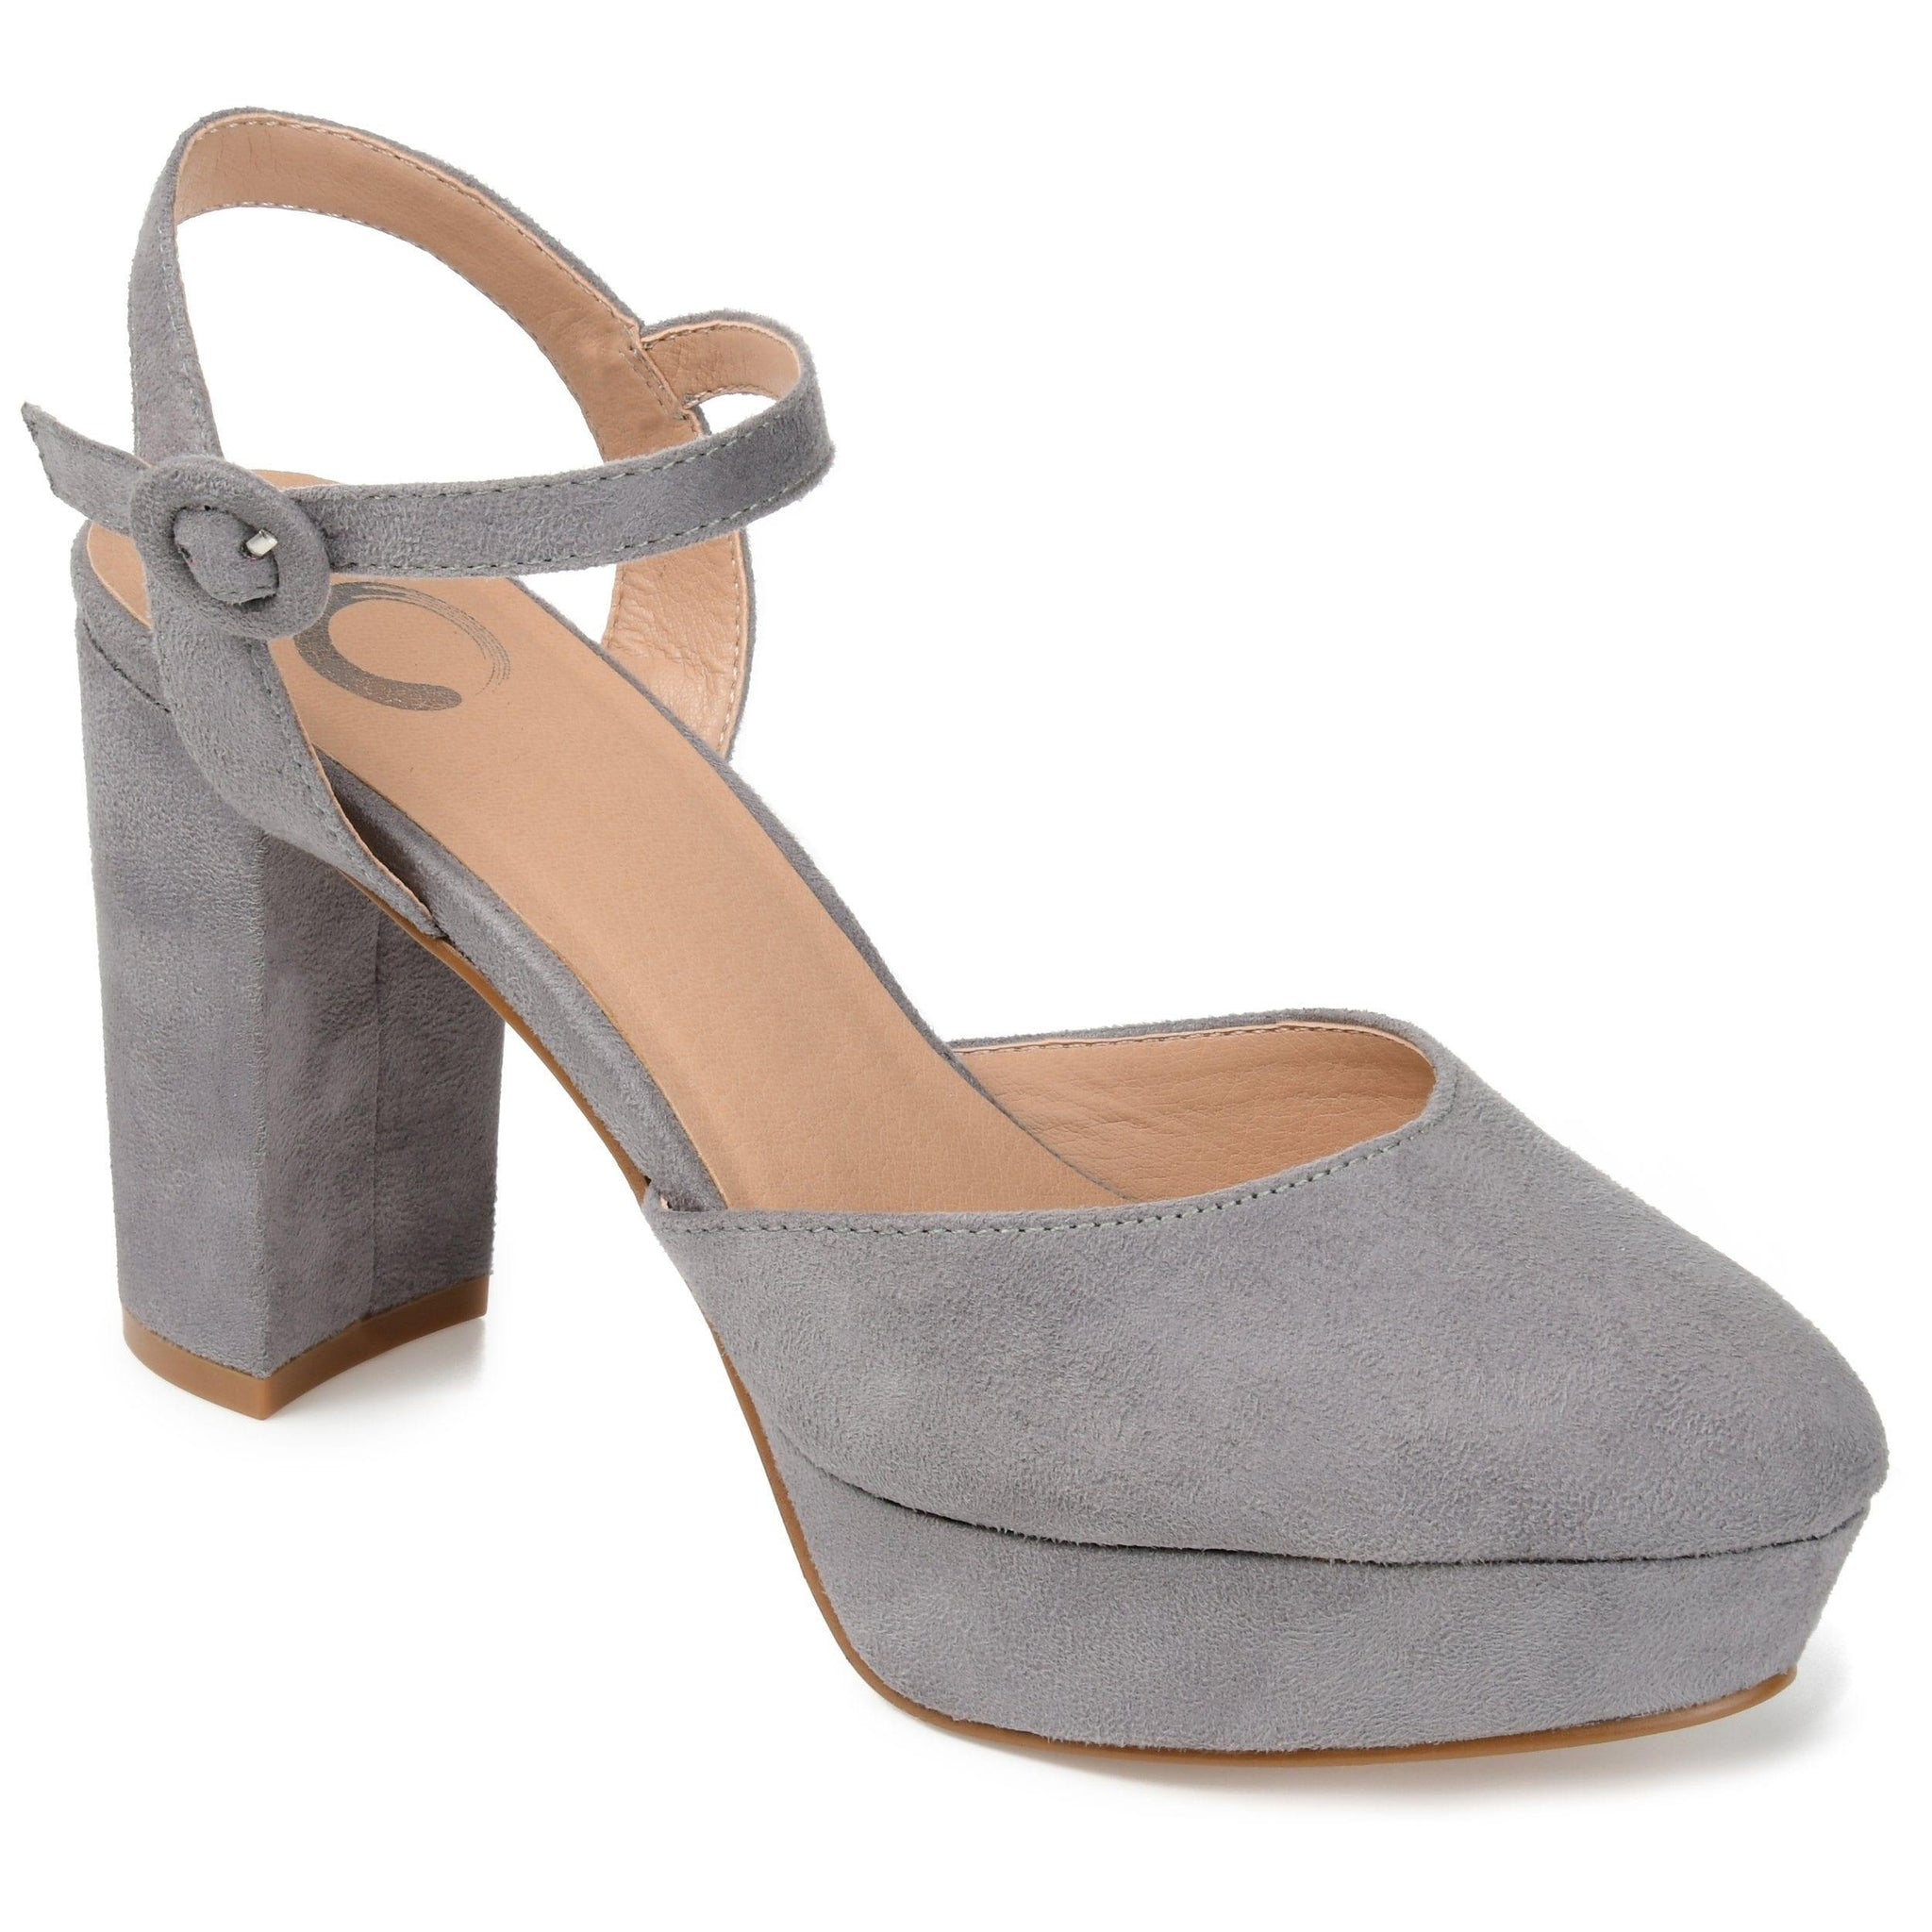 ROSLYNN SHOES Journee Collection Grey 7